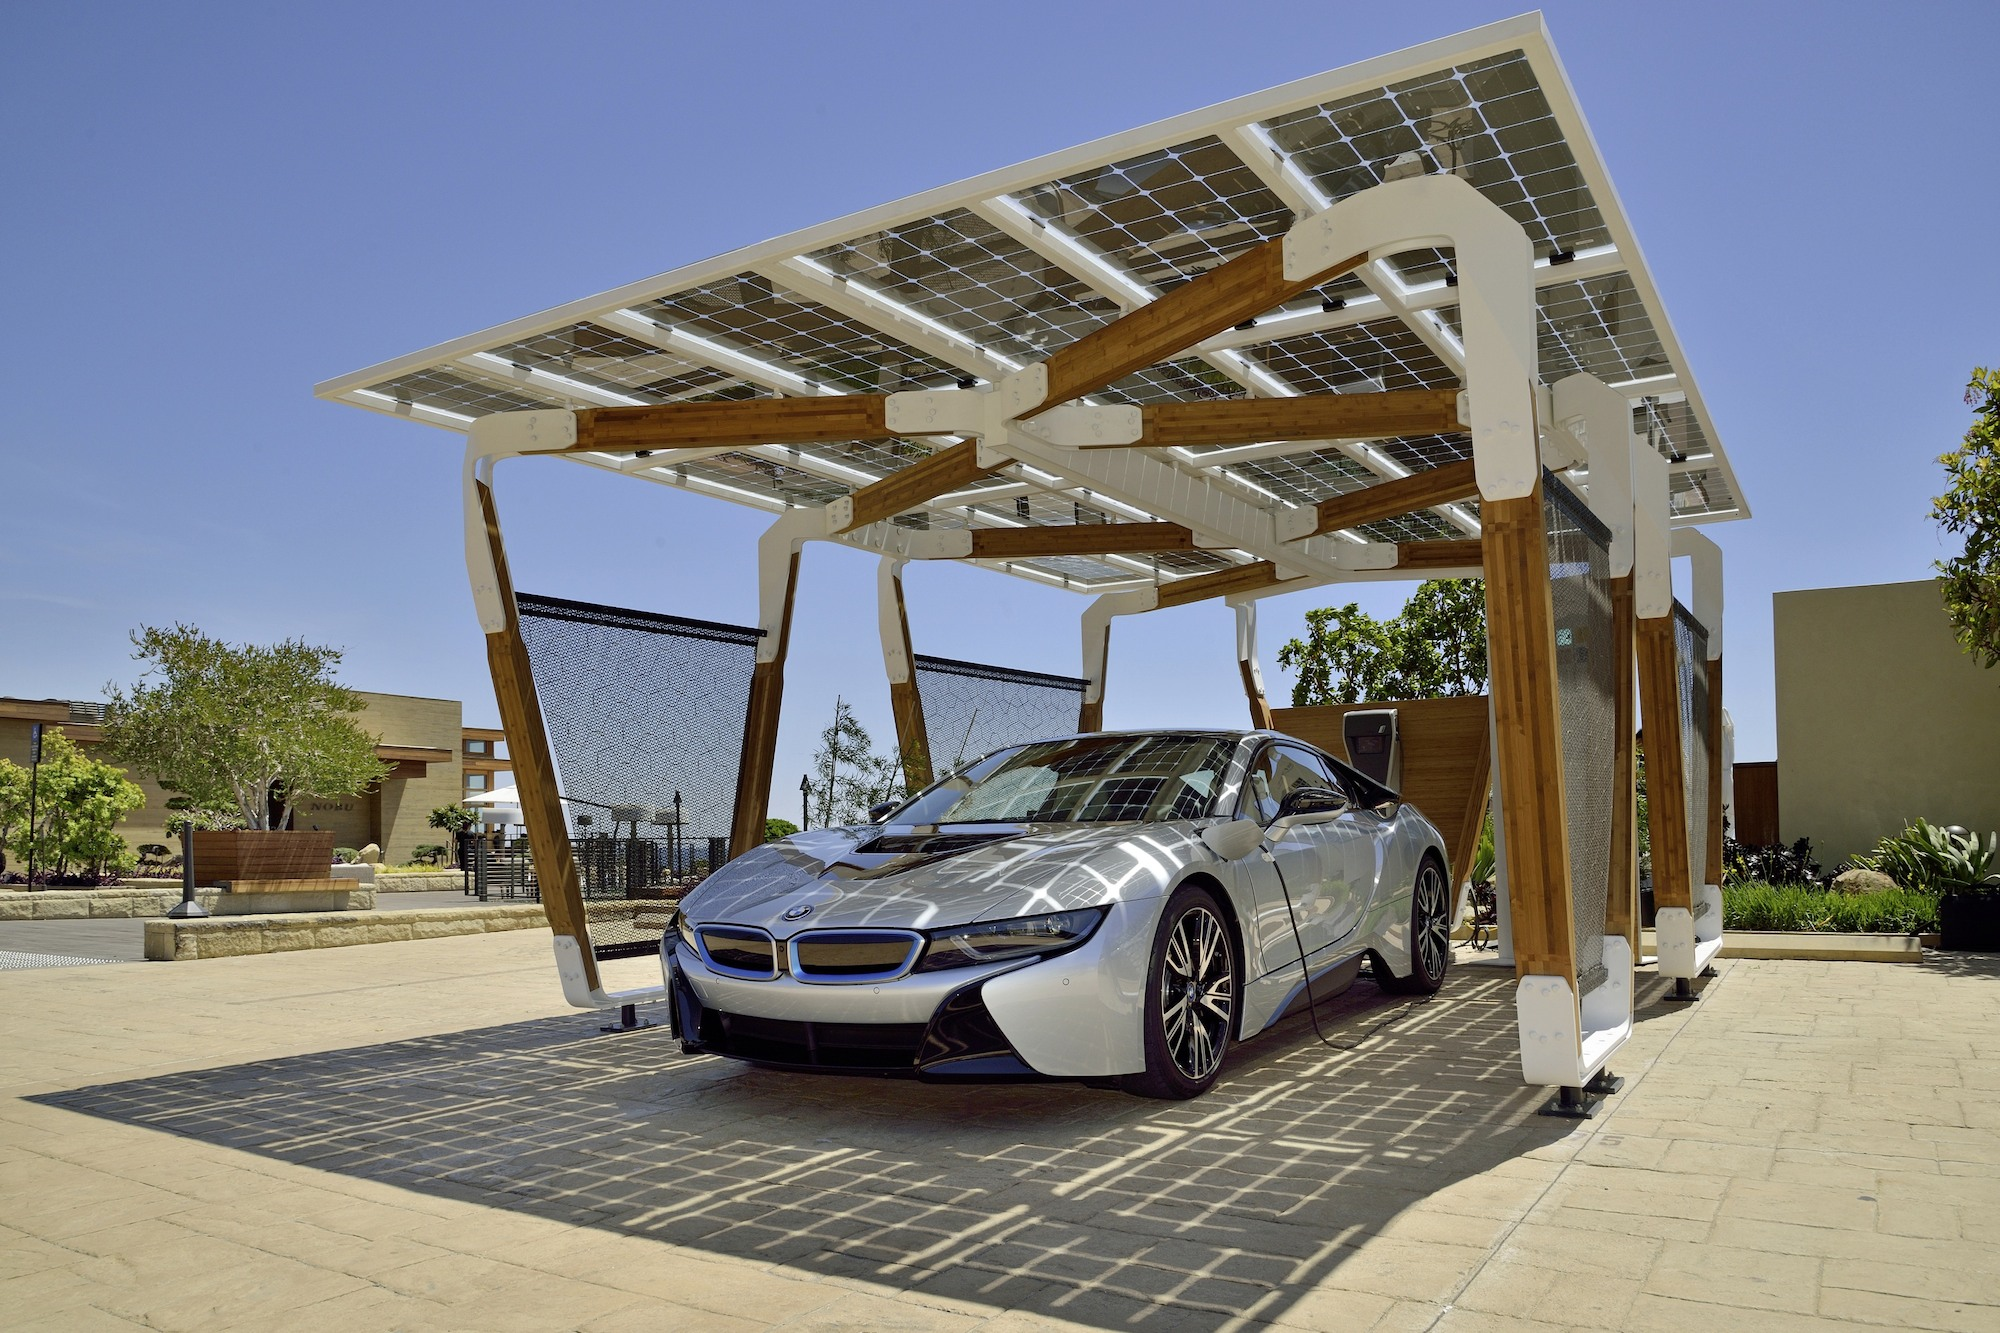 Karpot Bmw Solar Charging Carport Concept Is Stunning Functional Art